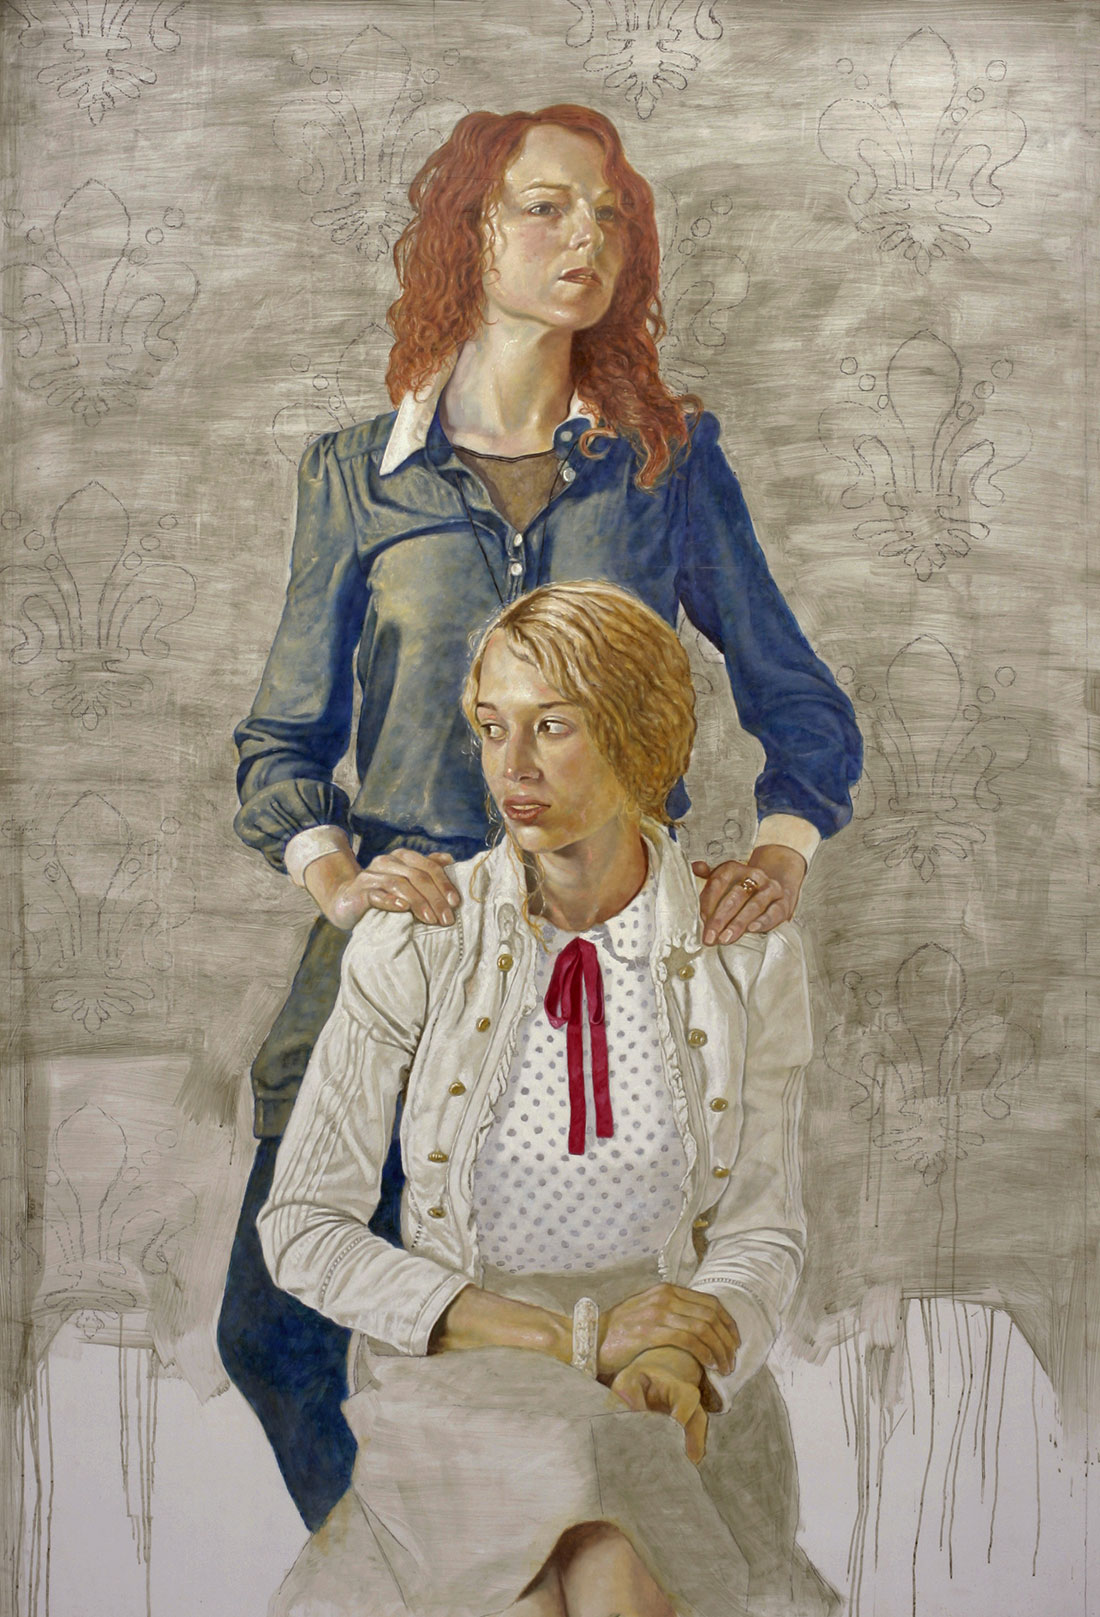 Chère petite soeur / Juliette et Justine, 2015, 250 x 170 cm, oil on wax, on canvas, on panel